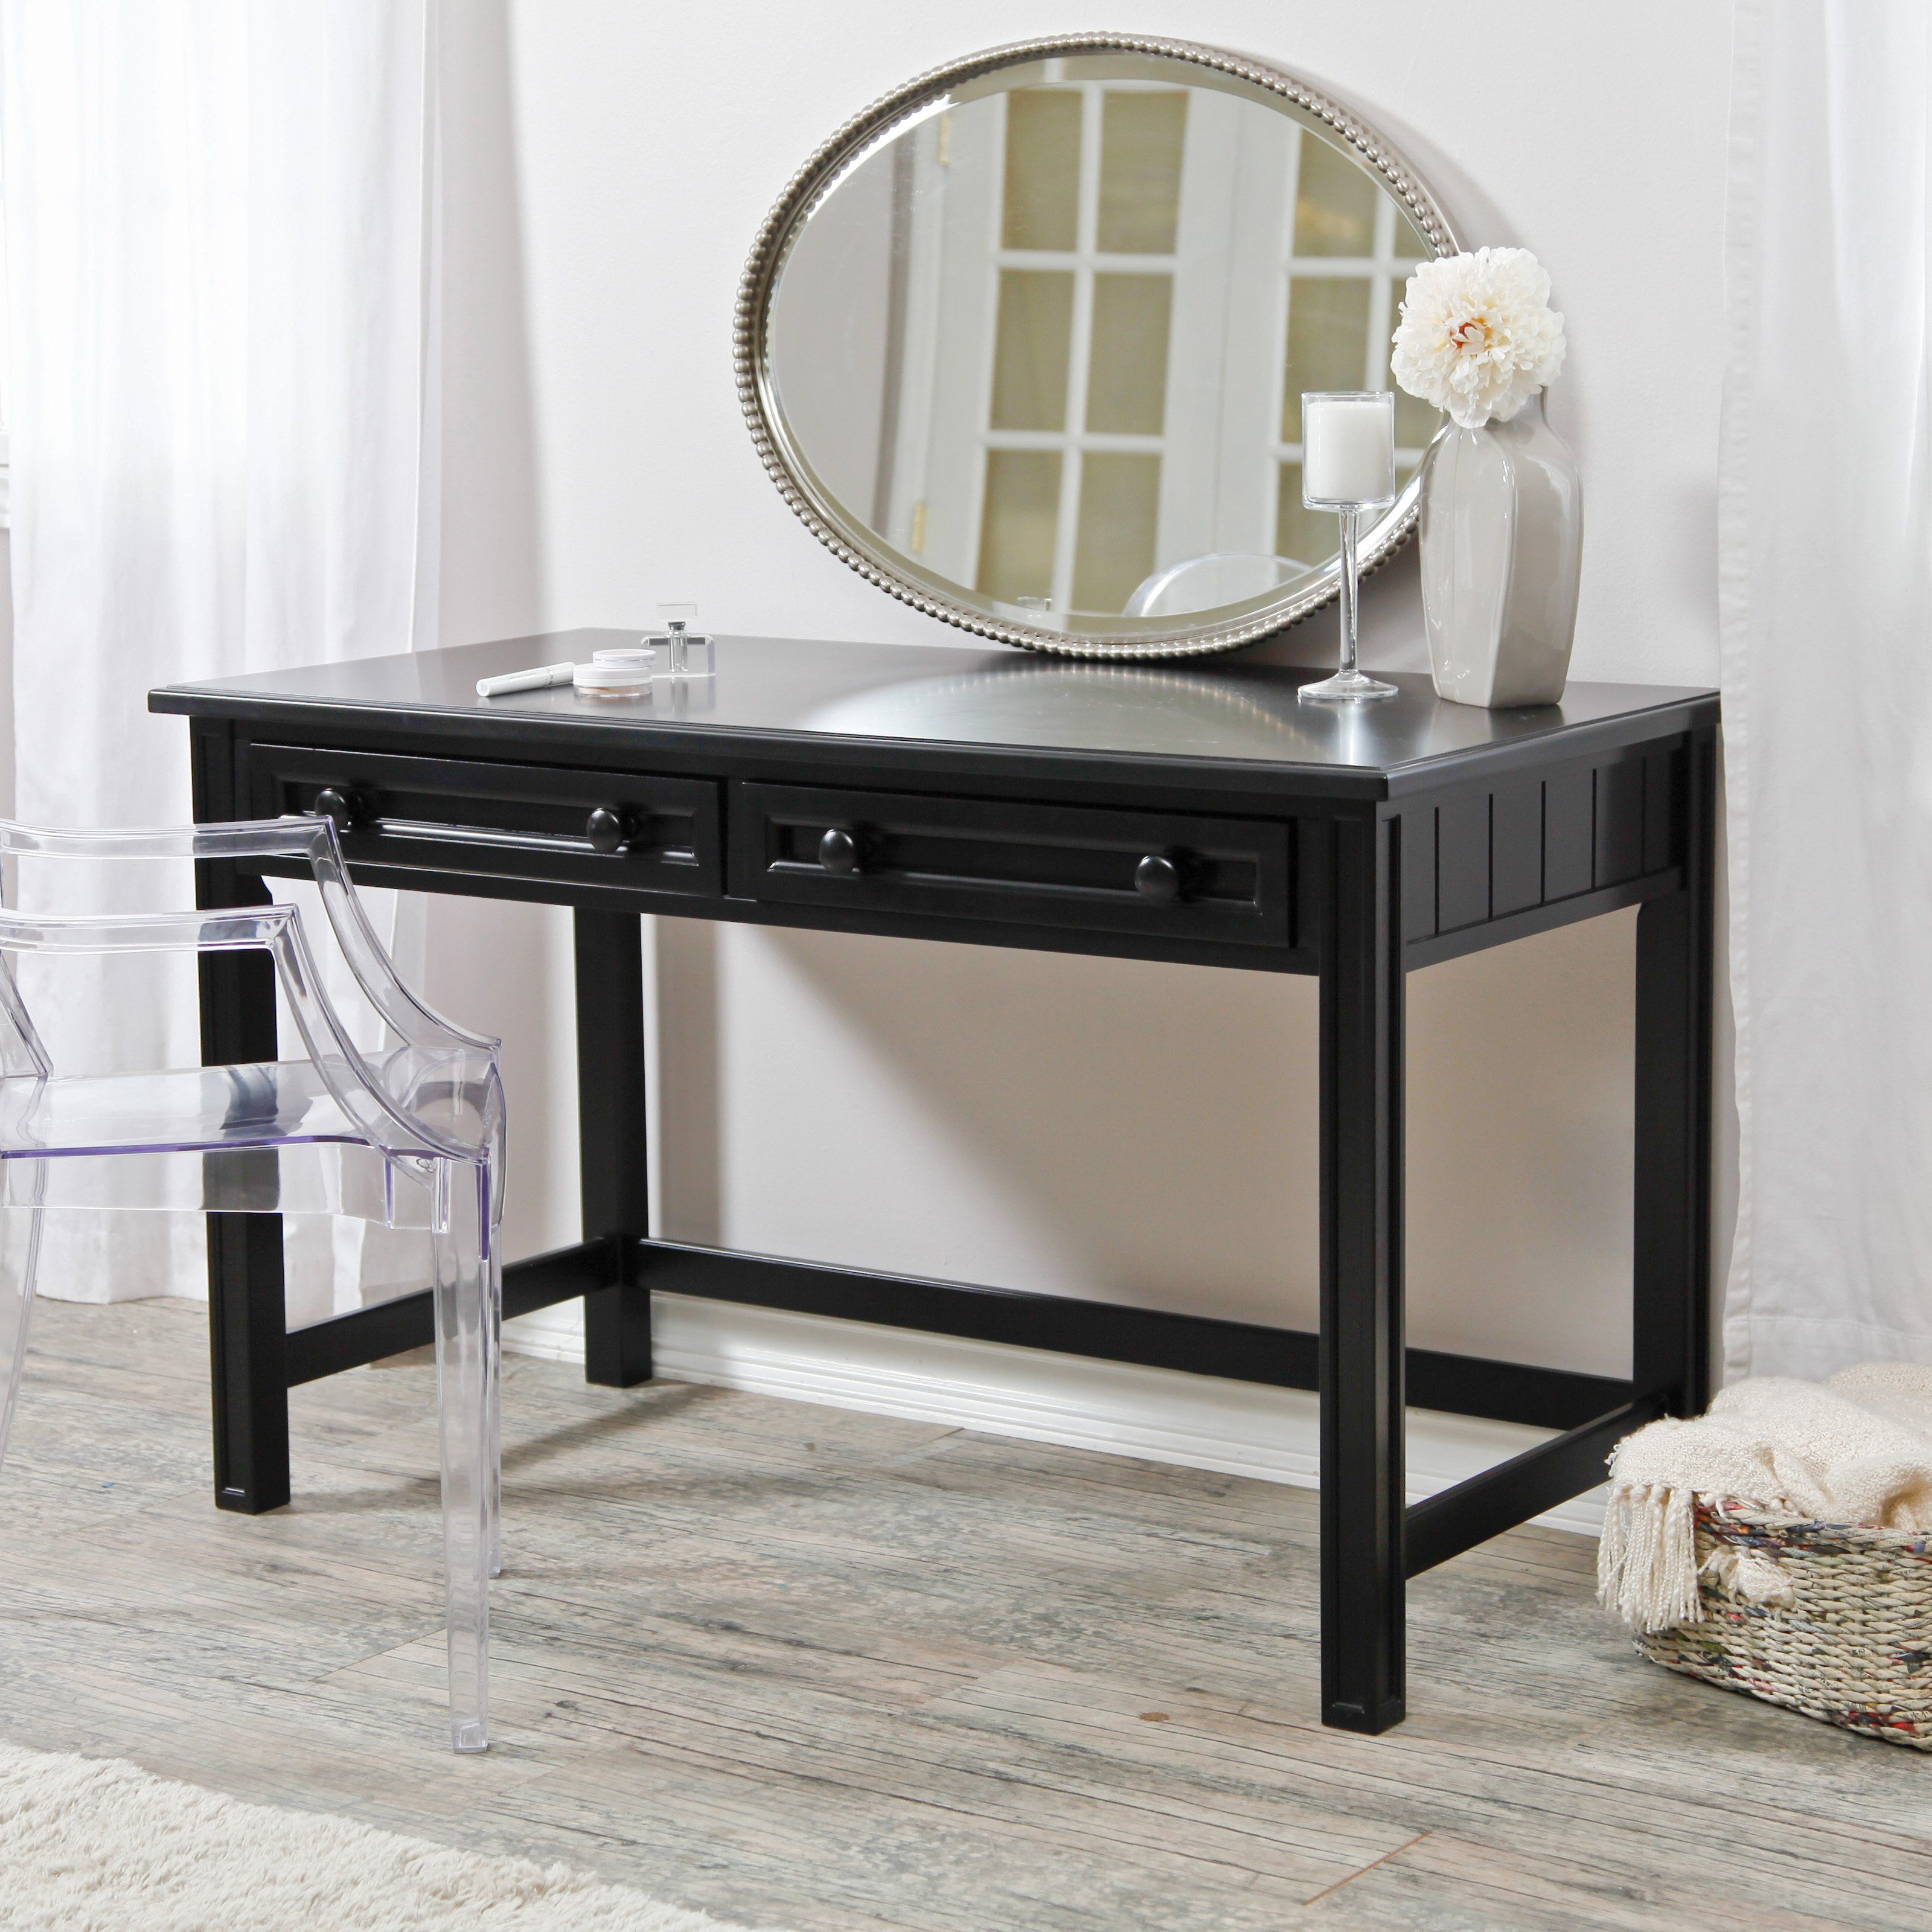 Amazing Casey Black Bedroom Vanity $299.99 Images